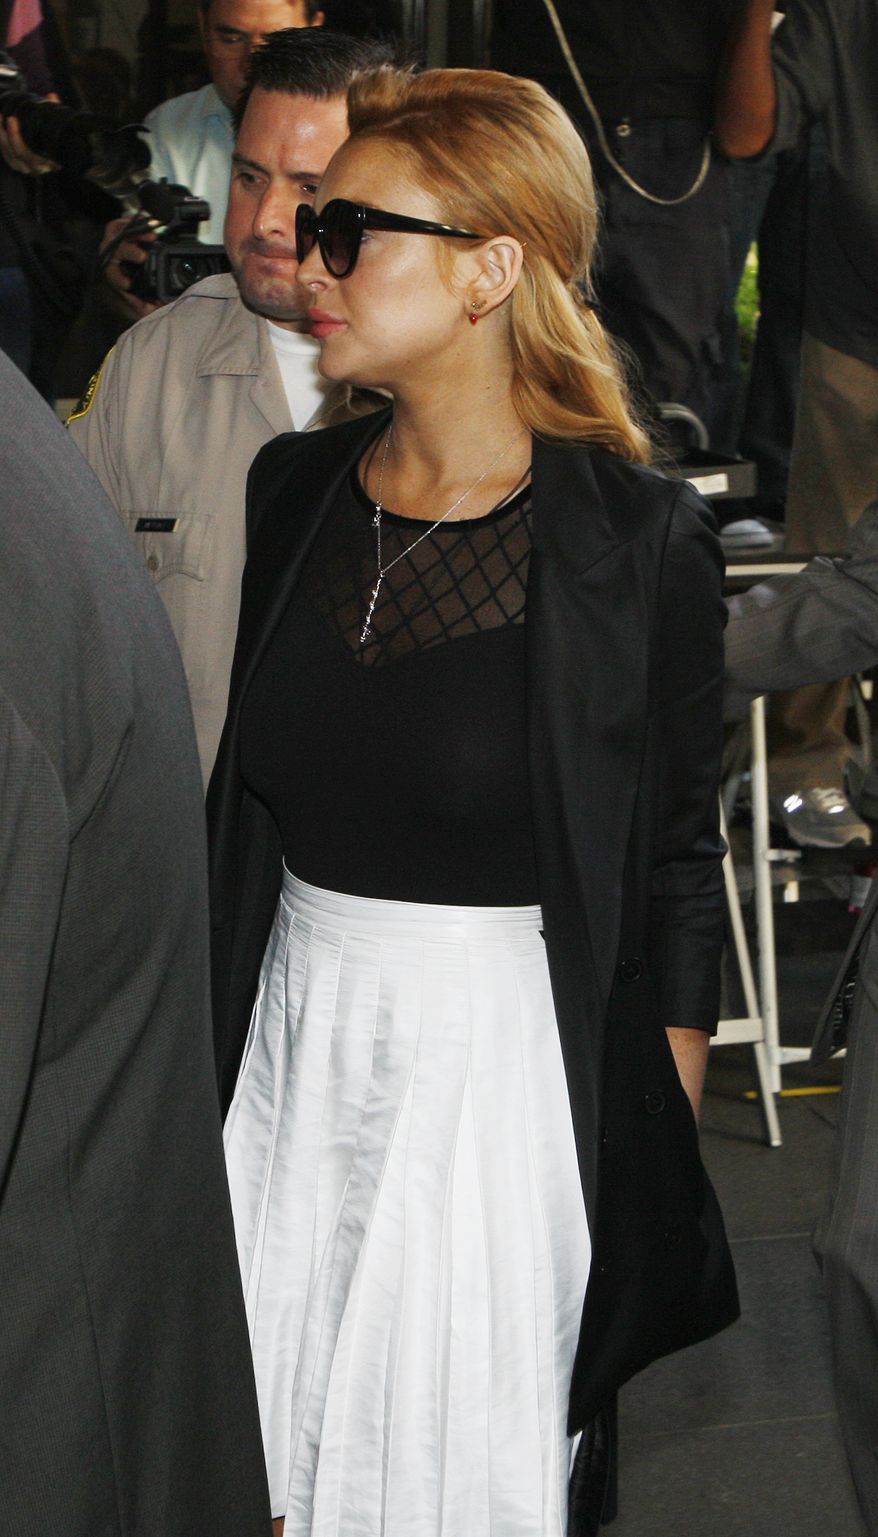 Lindsay Lohan arrives for a hearing Friday at the Beverly Hills Courthouse in Beverly Hills, Calif. (Associated Press)